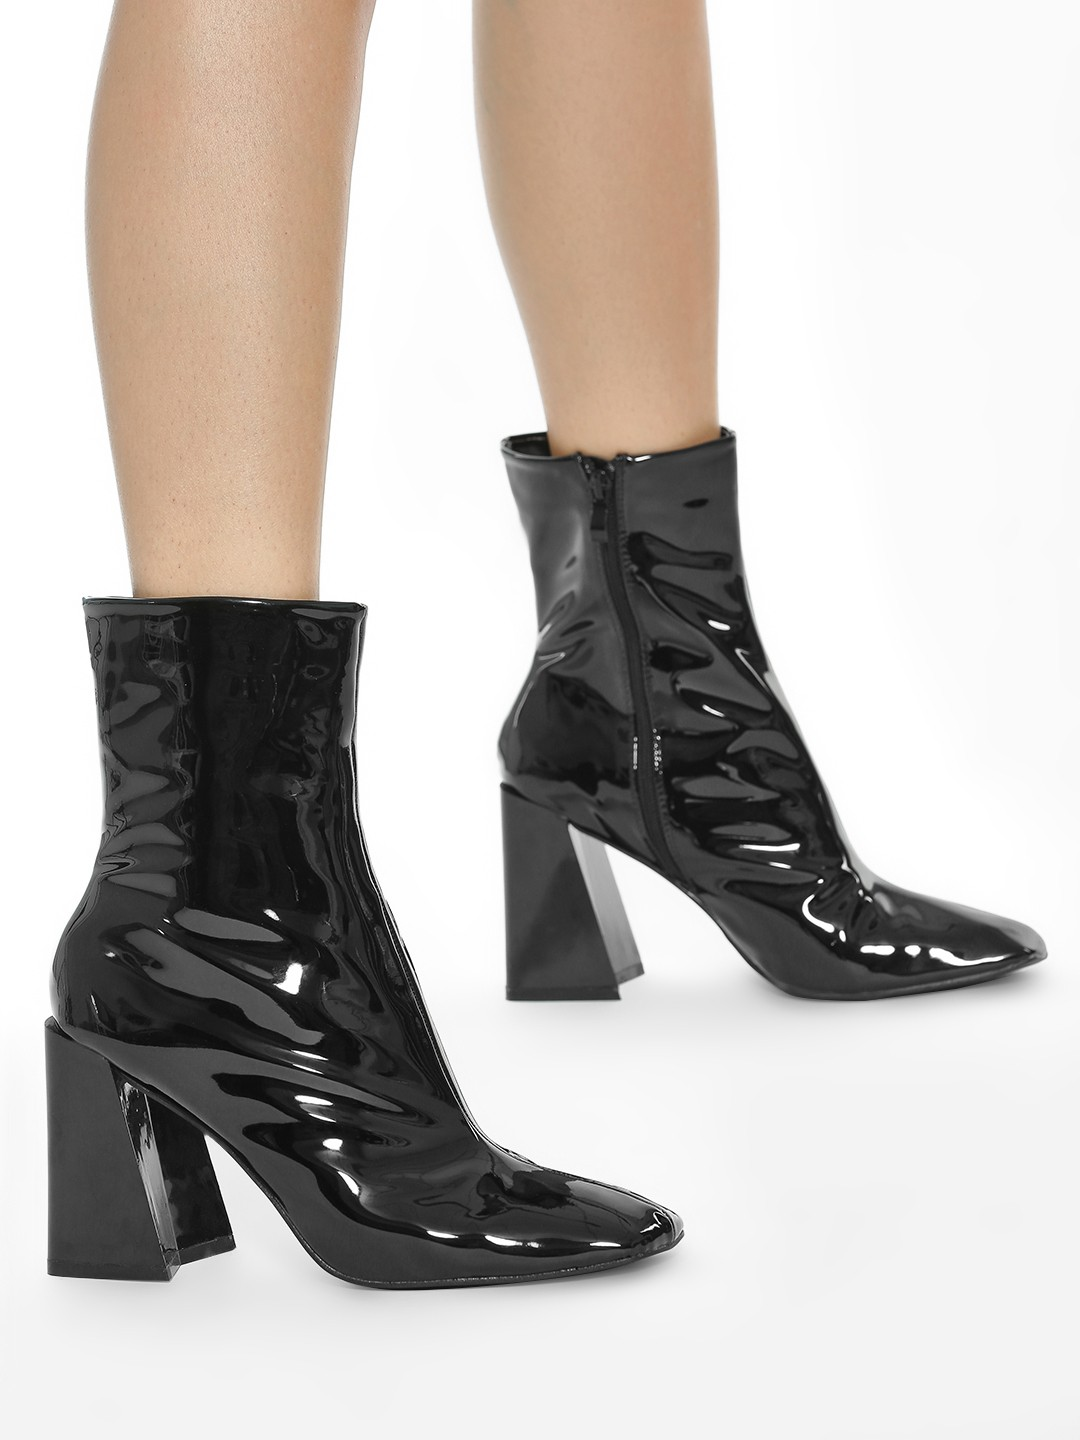 Intoto Black Patent Calf Length Boots 1